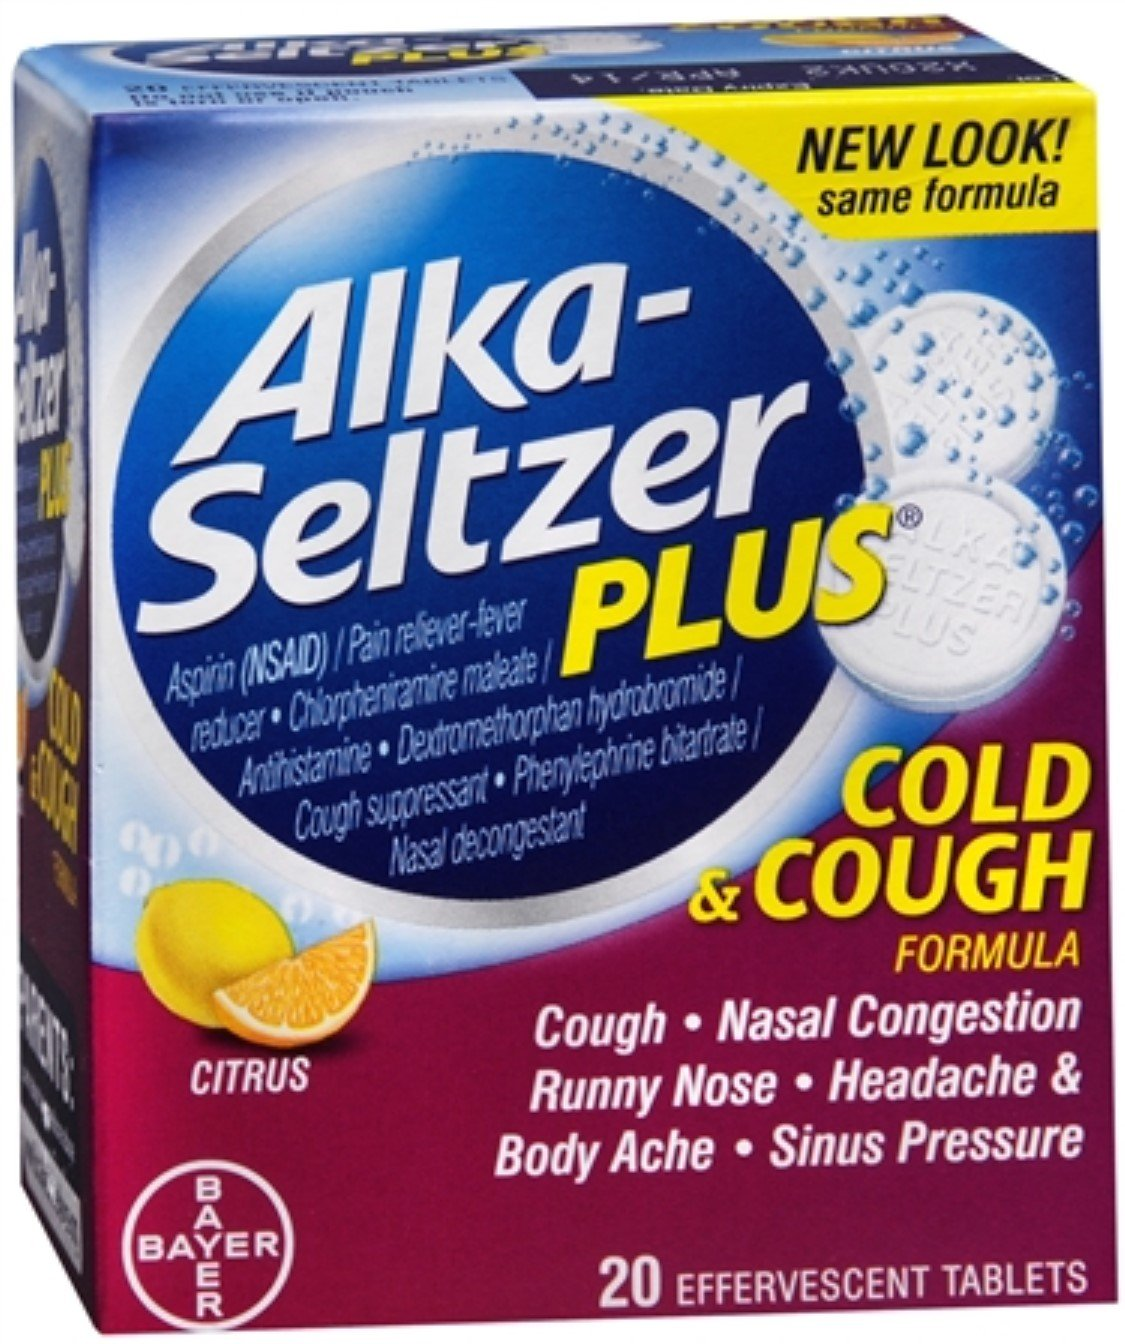 Alka-Seltzer Plus Cold & Cough Formula Effervescent Tablets, Citrus 20 ea (Pack of 9)